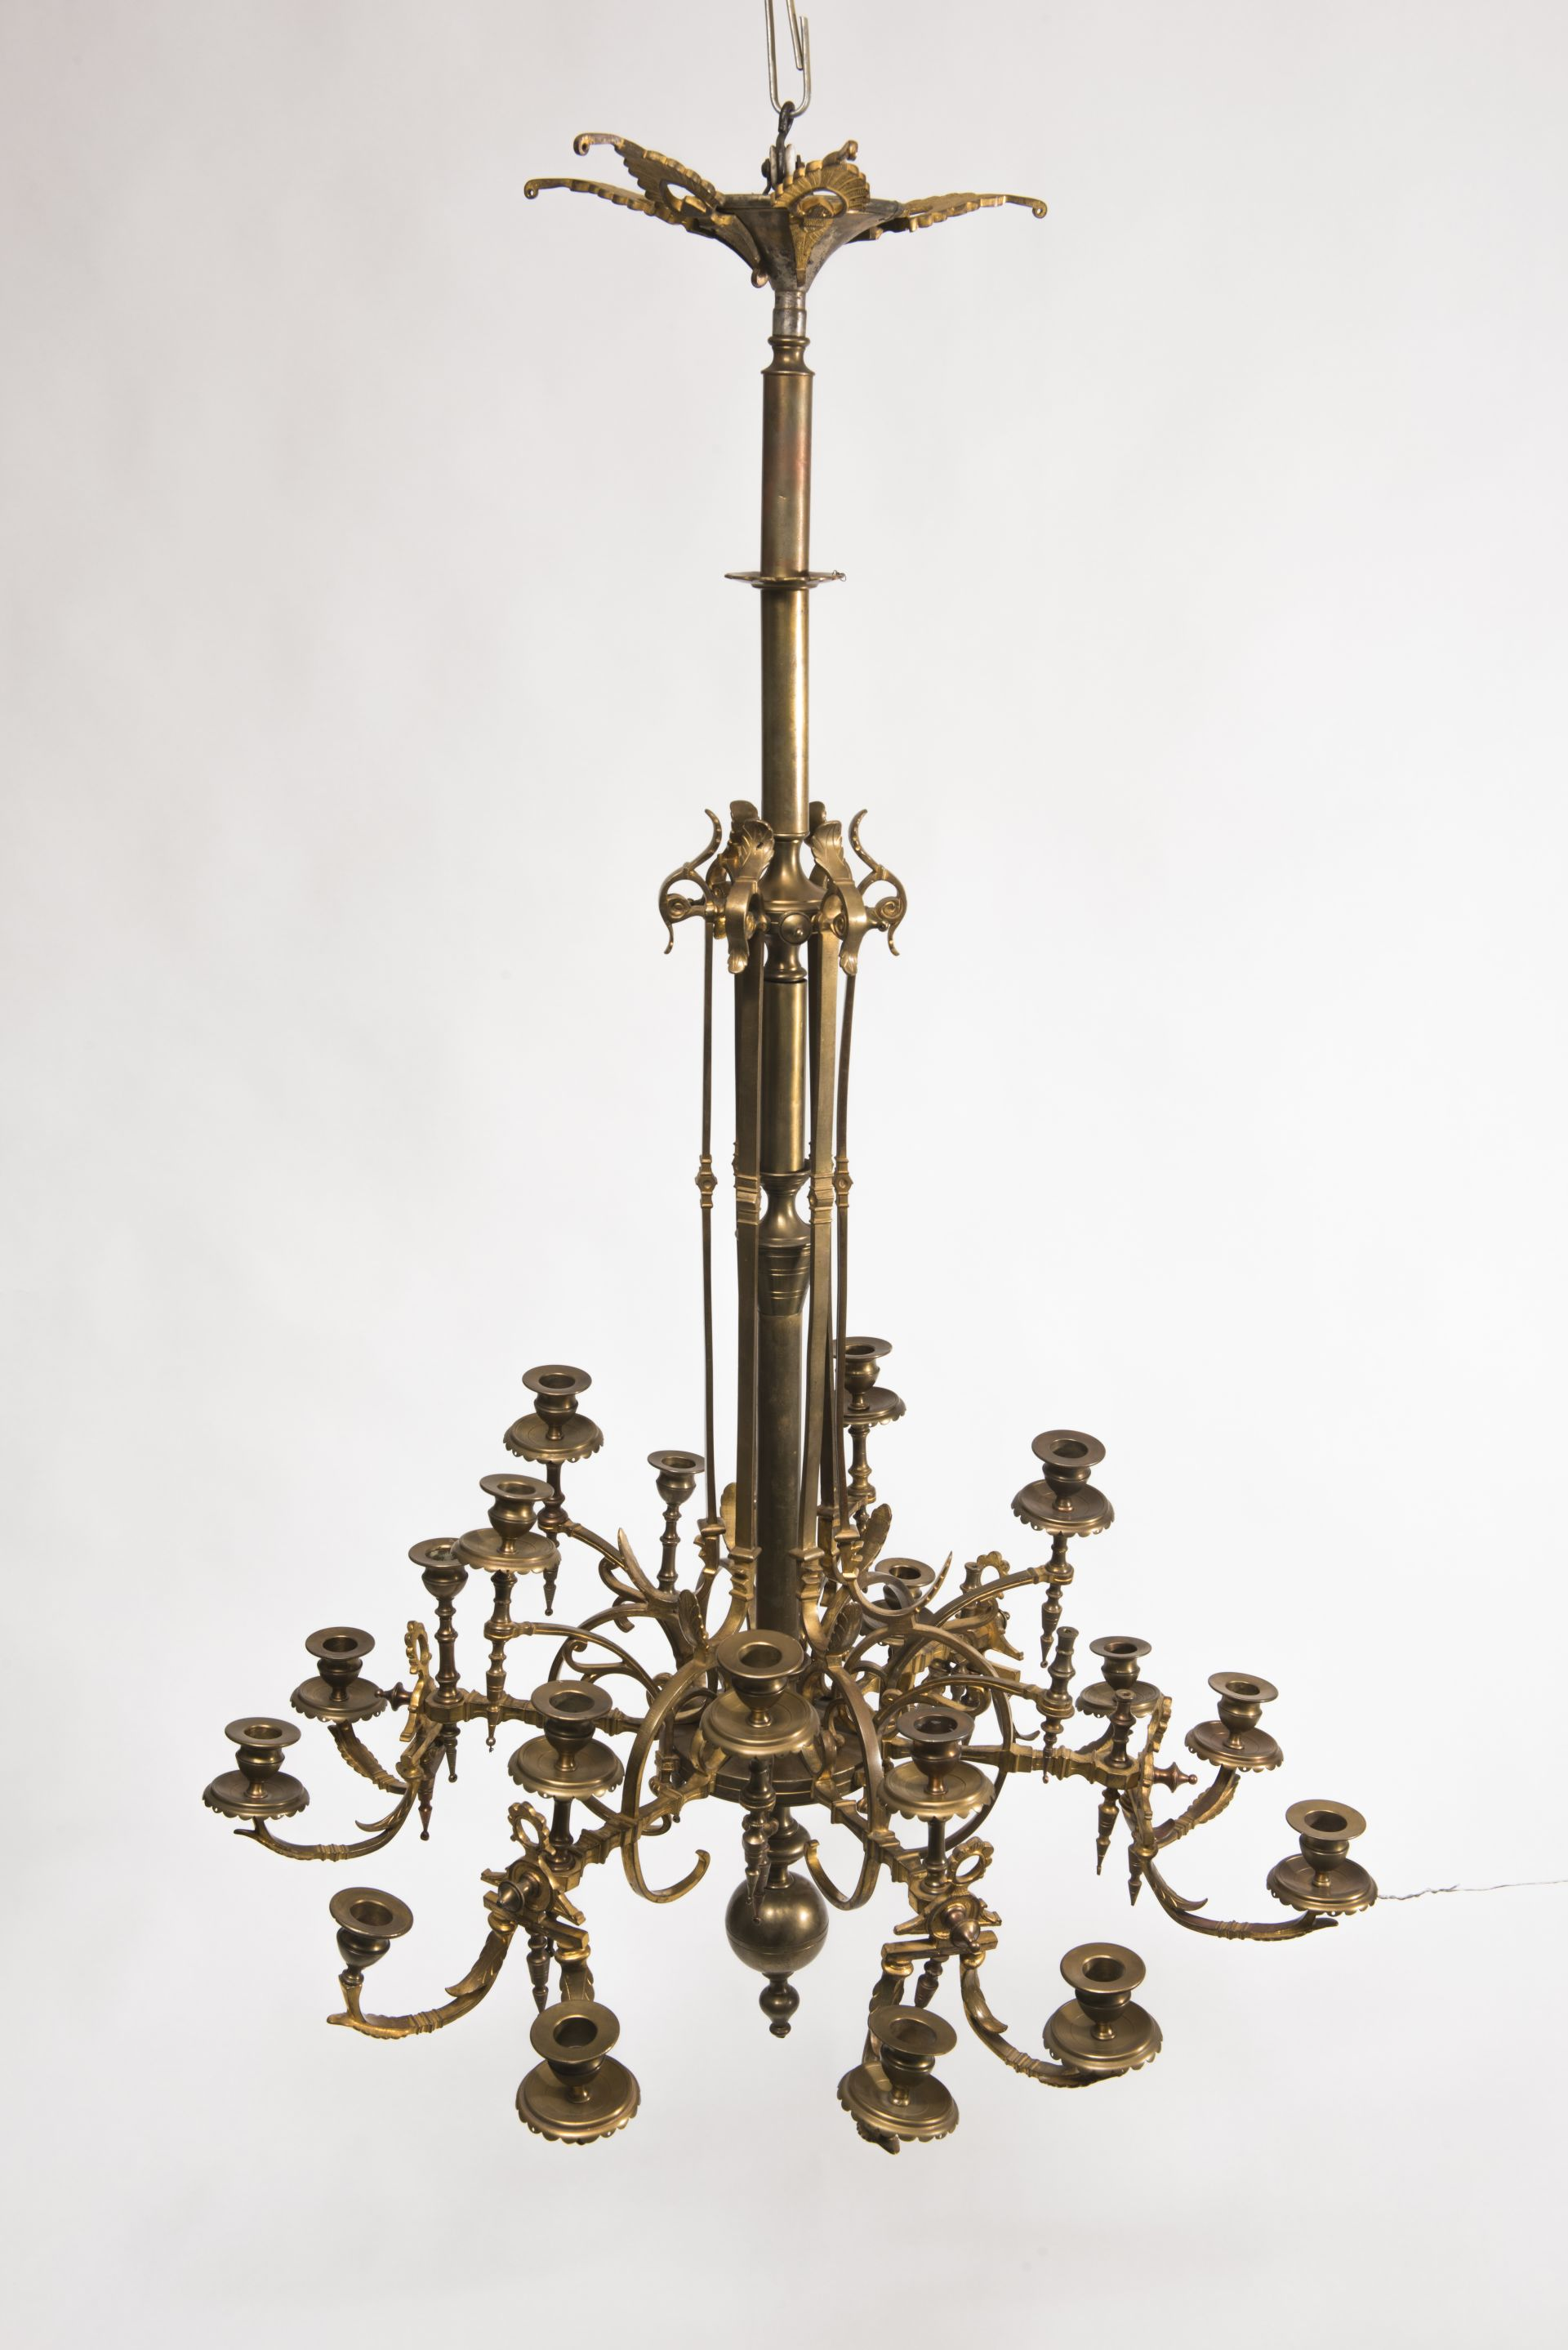 Chandelier, 1920–1939, National Museum of Lithuania, IM-5098. Photo by Kęstutis Stoškus, 2017